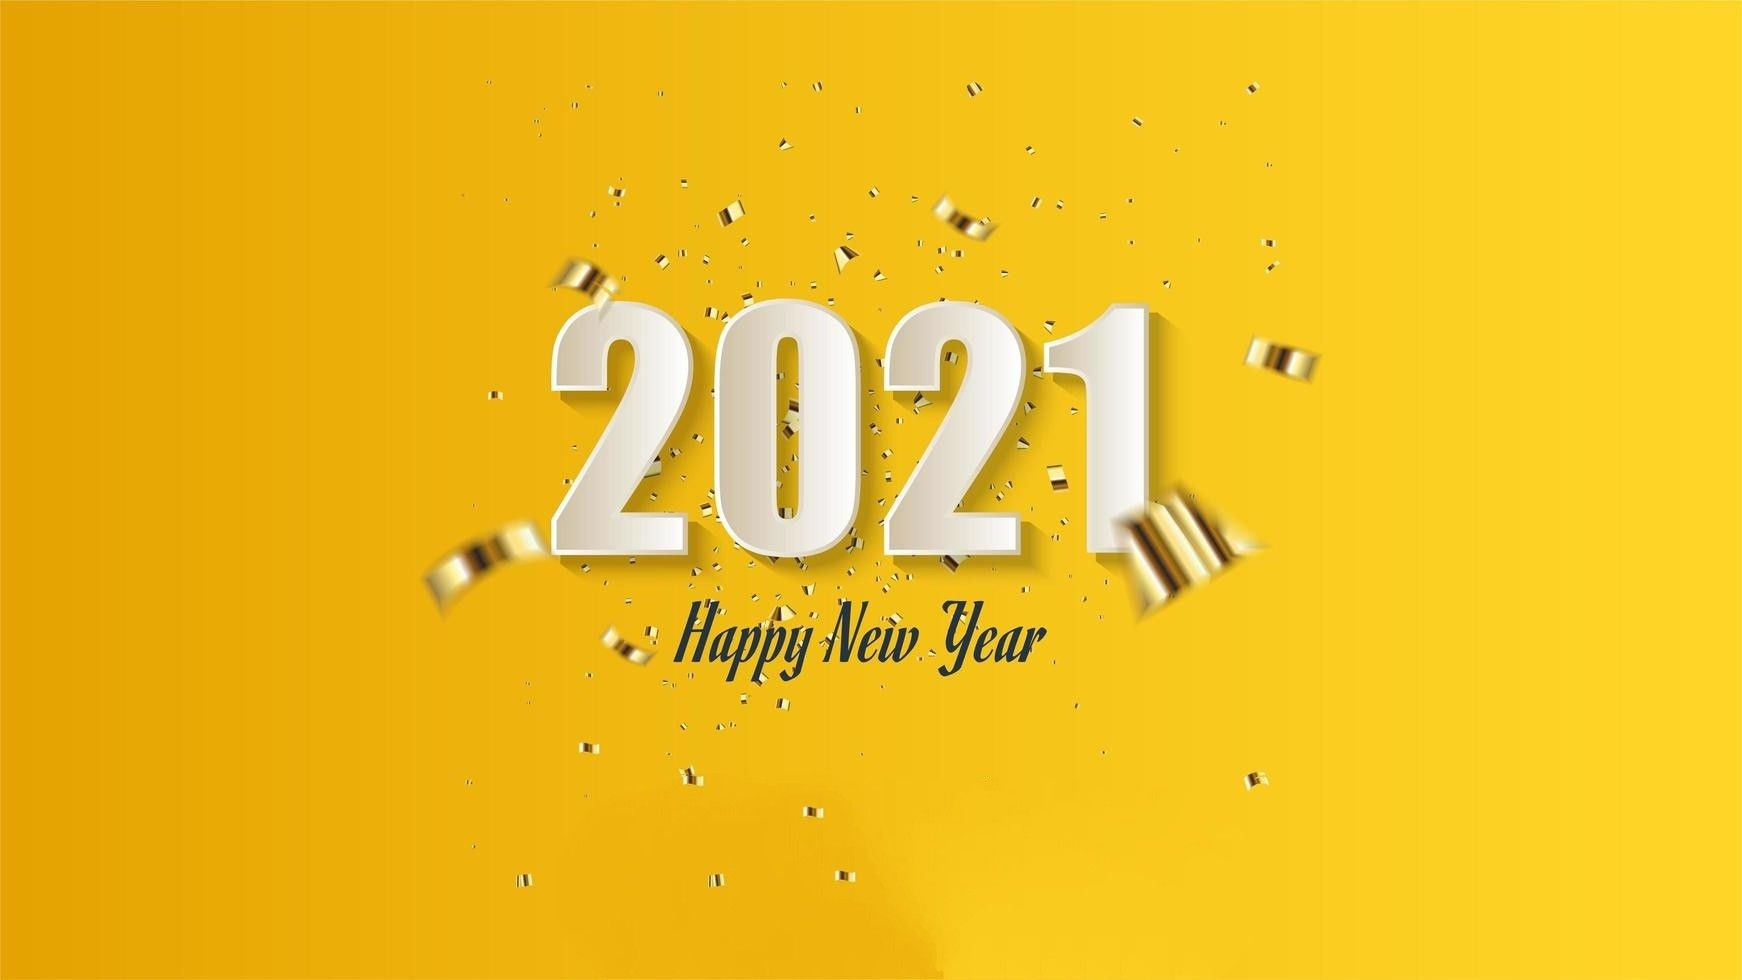 Happy New Year 2021 Wishes New Year Images Free For Everyone Happy New Year Images New Year Images Happy New